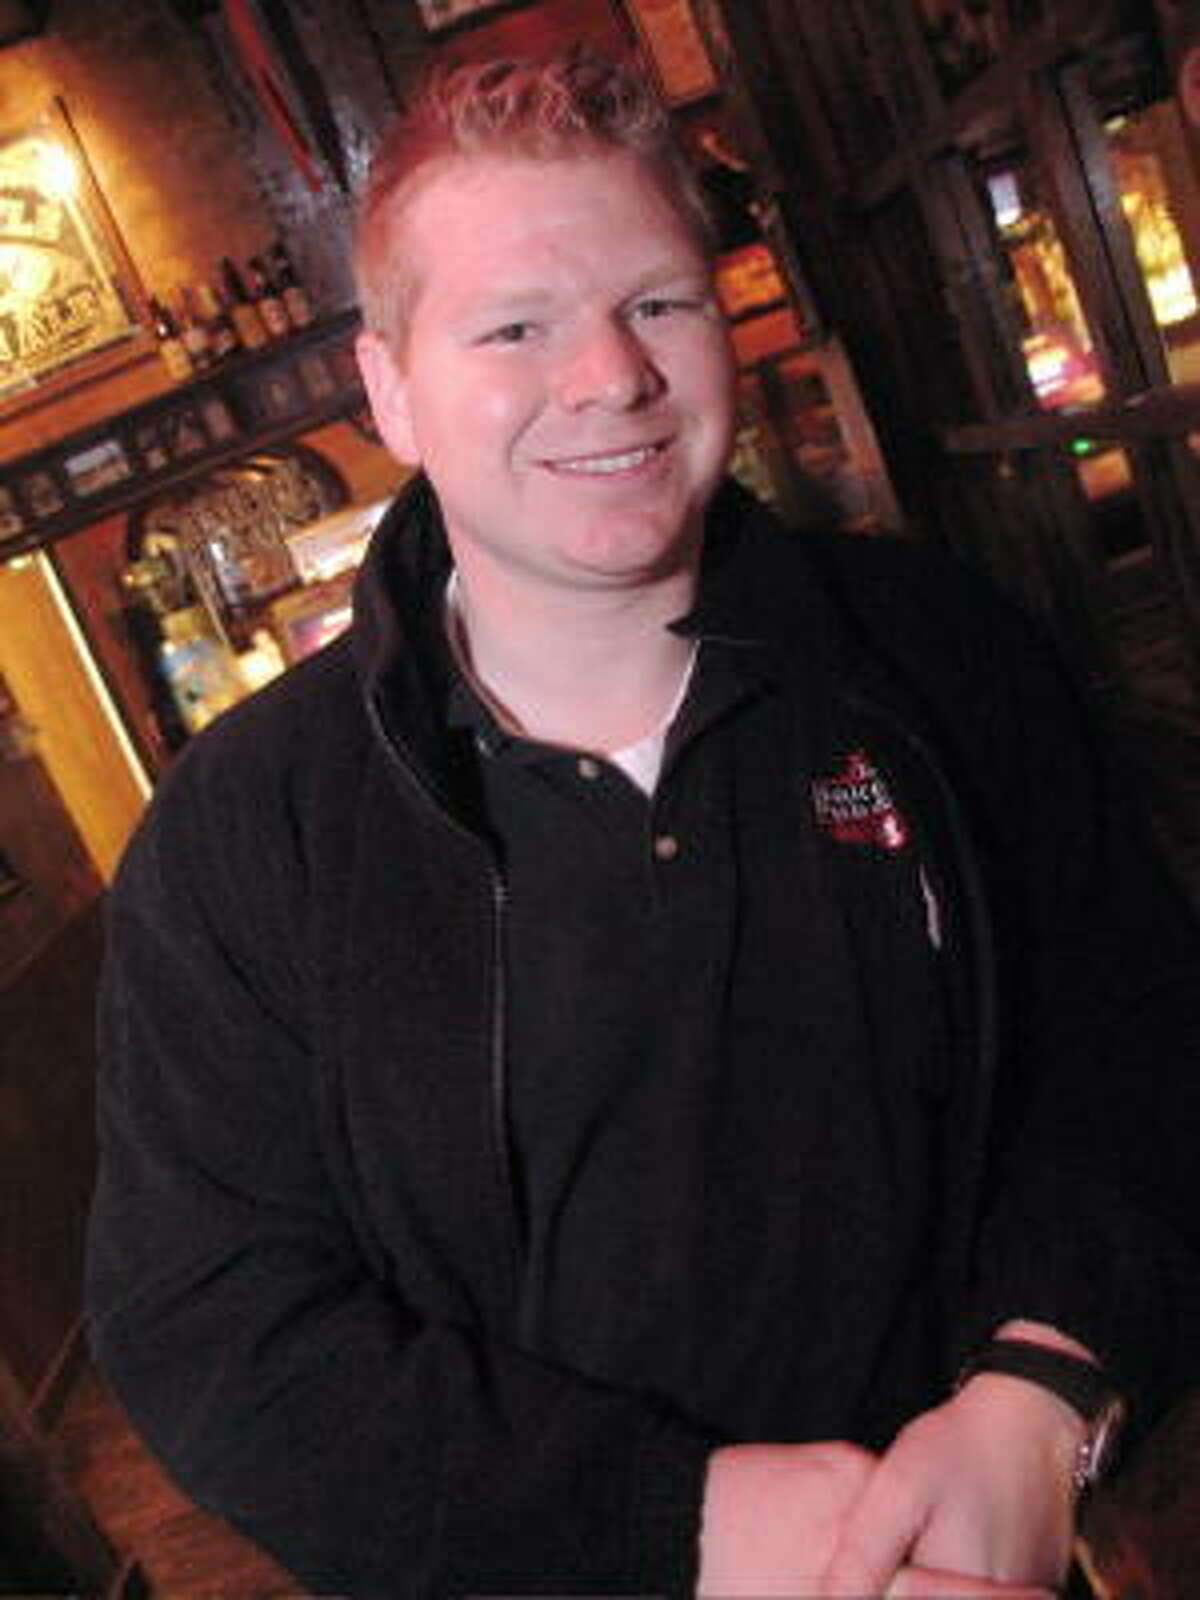 Mark Montory unwinds at Baker Street Pub, located at 5510 Morningside Drive.